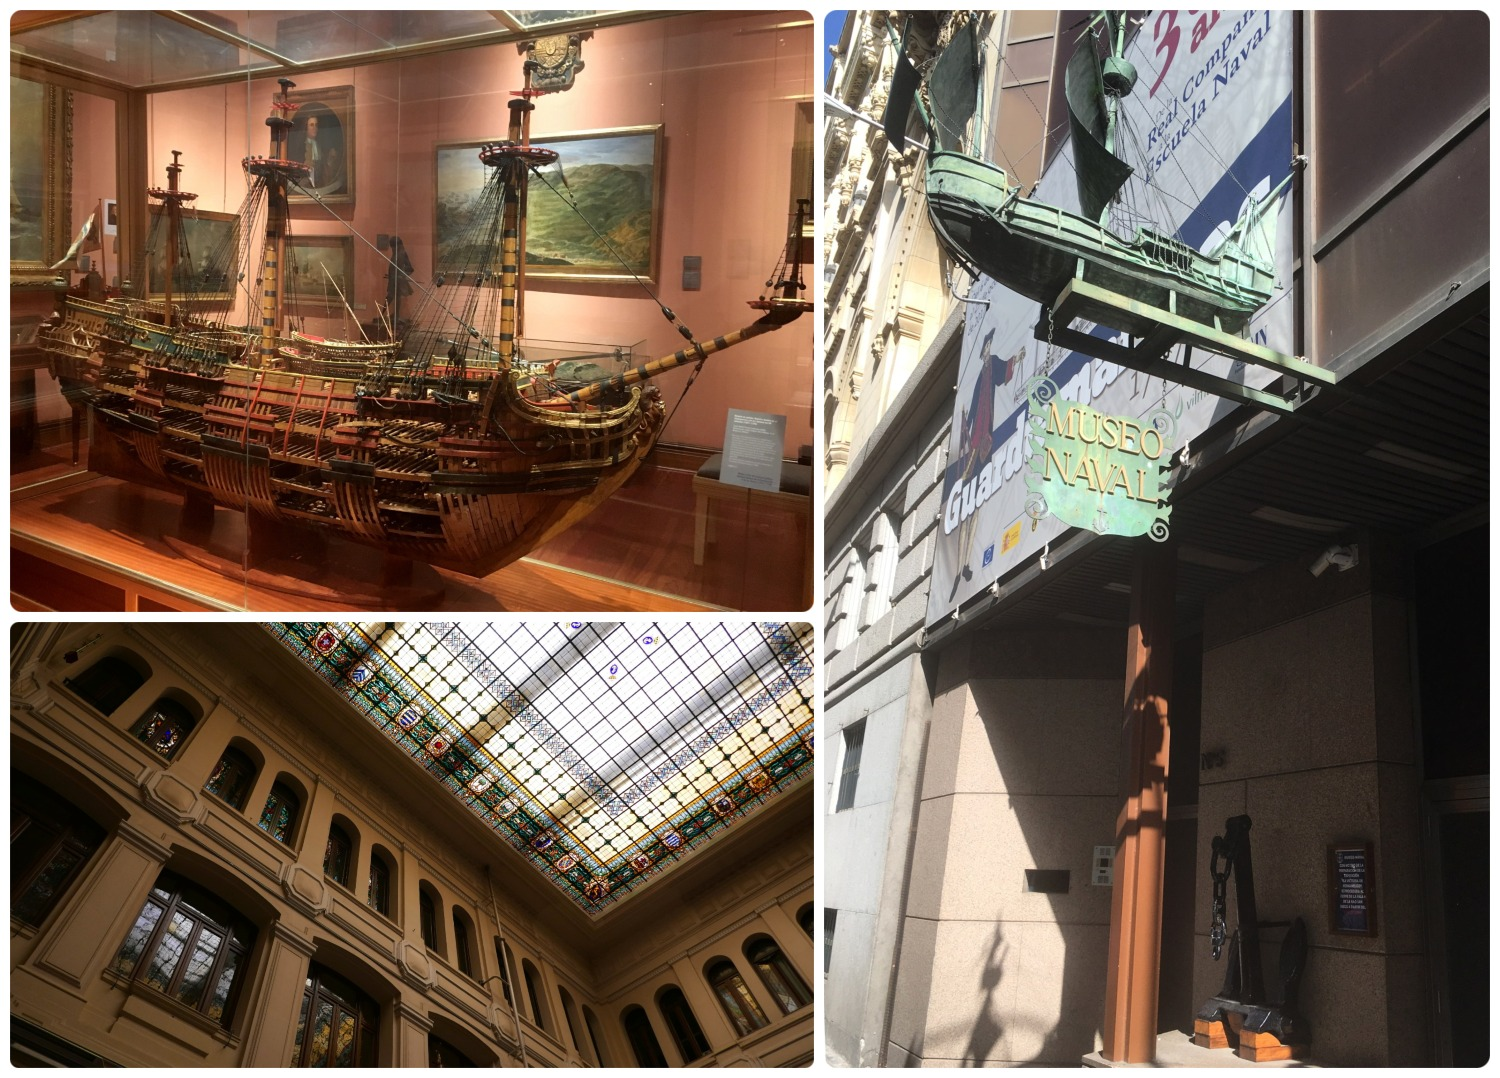 Maritime Museum (Museo Naval) in Madrid, Spain.